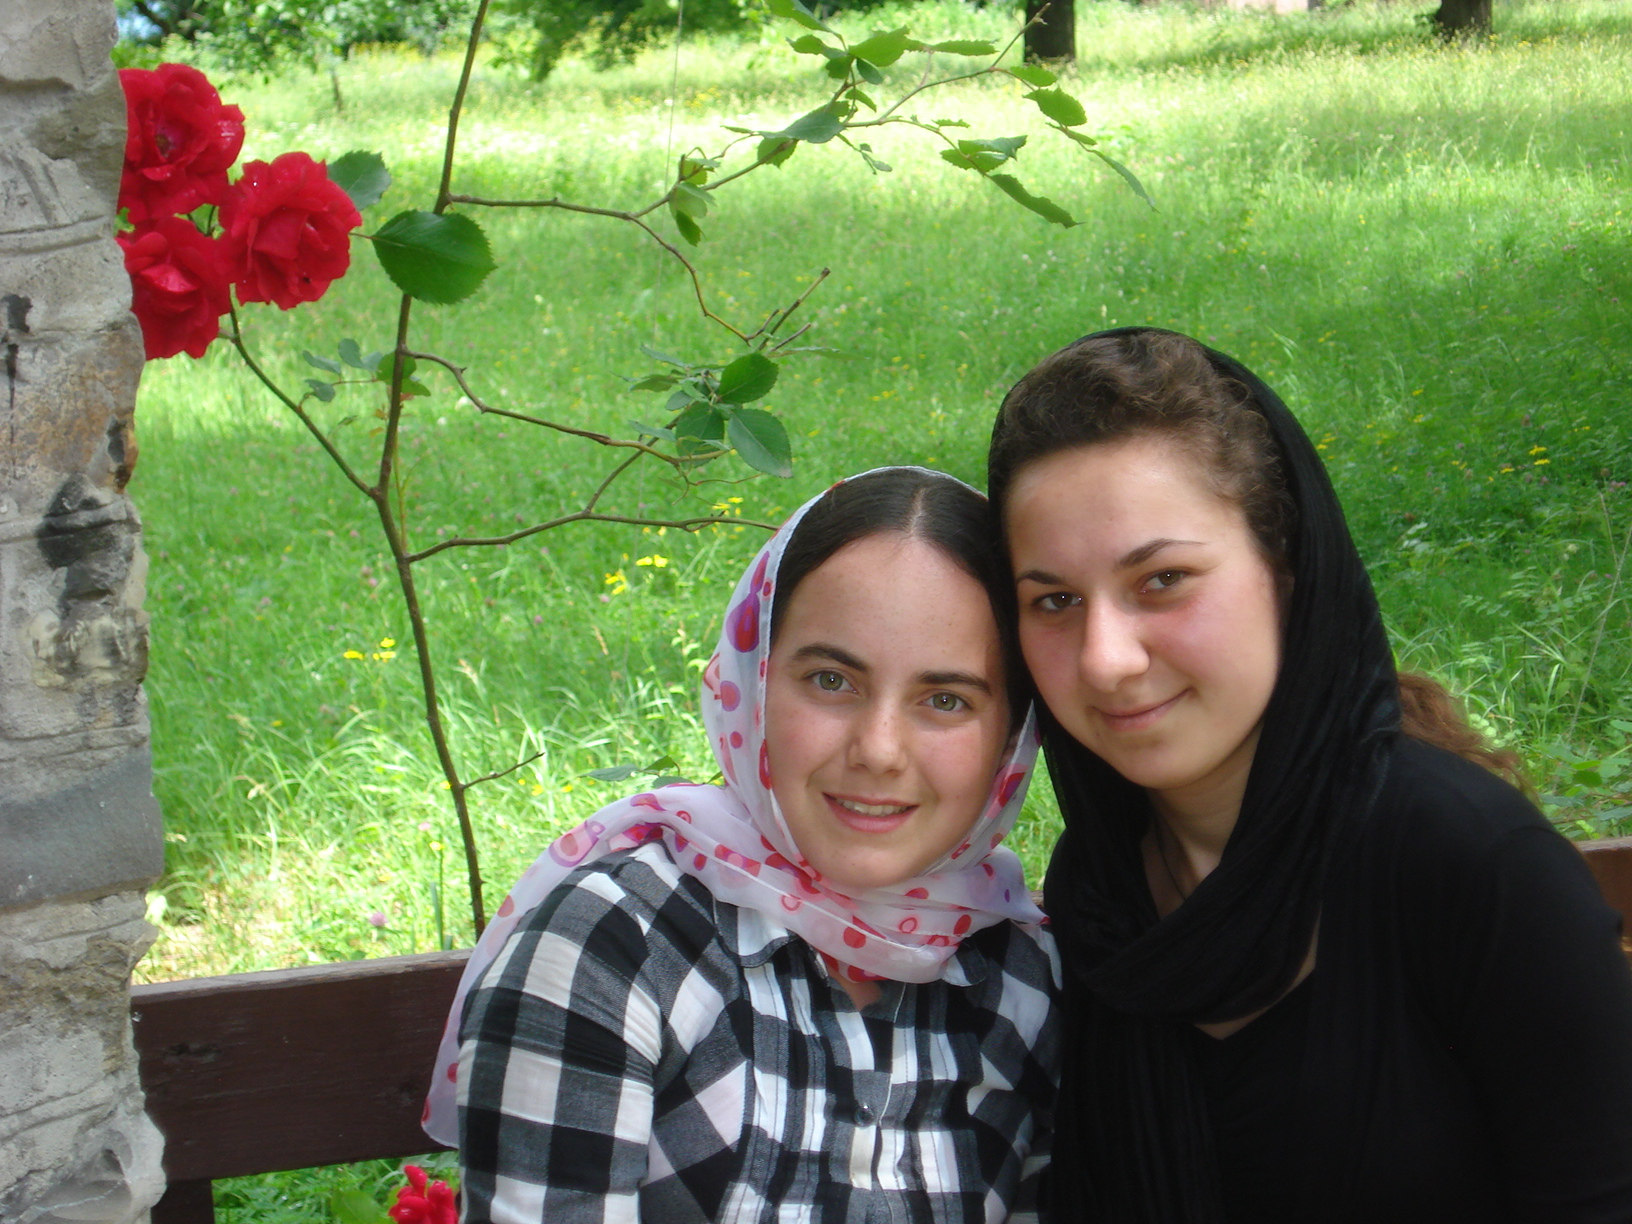 Two young Georgian girls after worship in Svetiskhoveli Cathedral in town of Mtskheta. This is considered the most venerated place of worship for Georgian Orthodox religion in the country